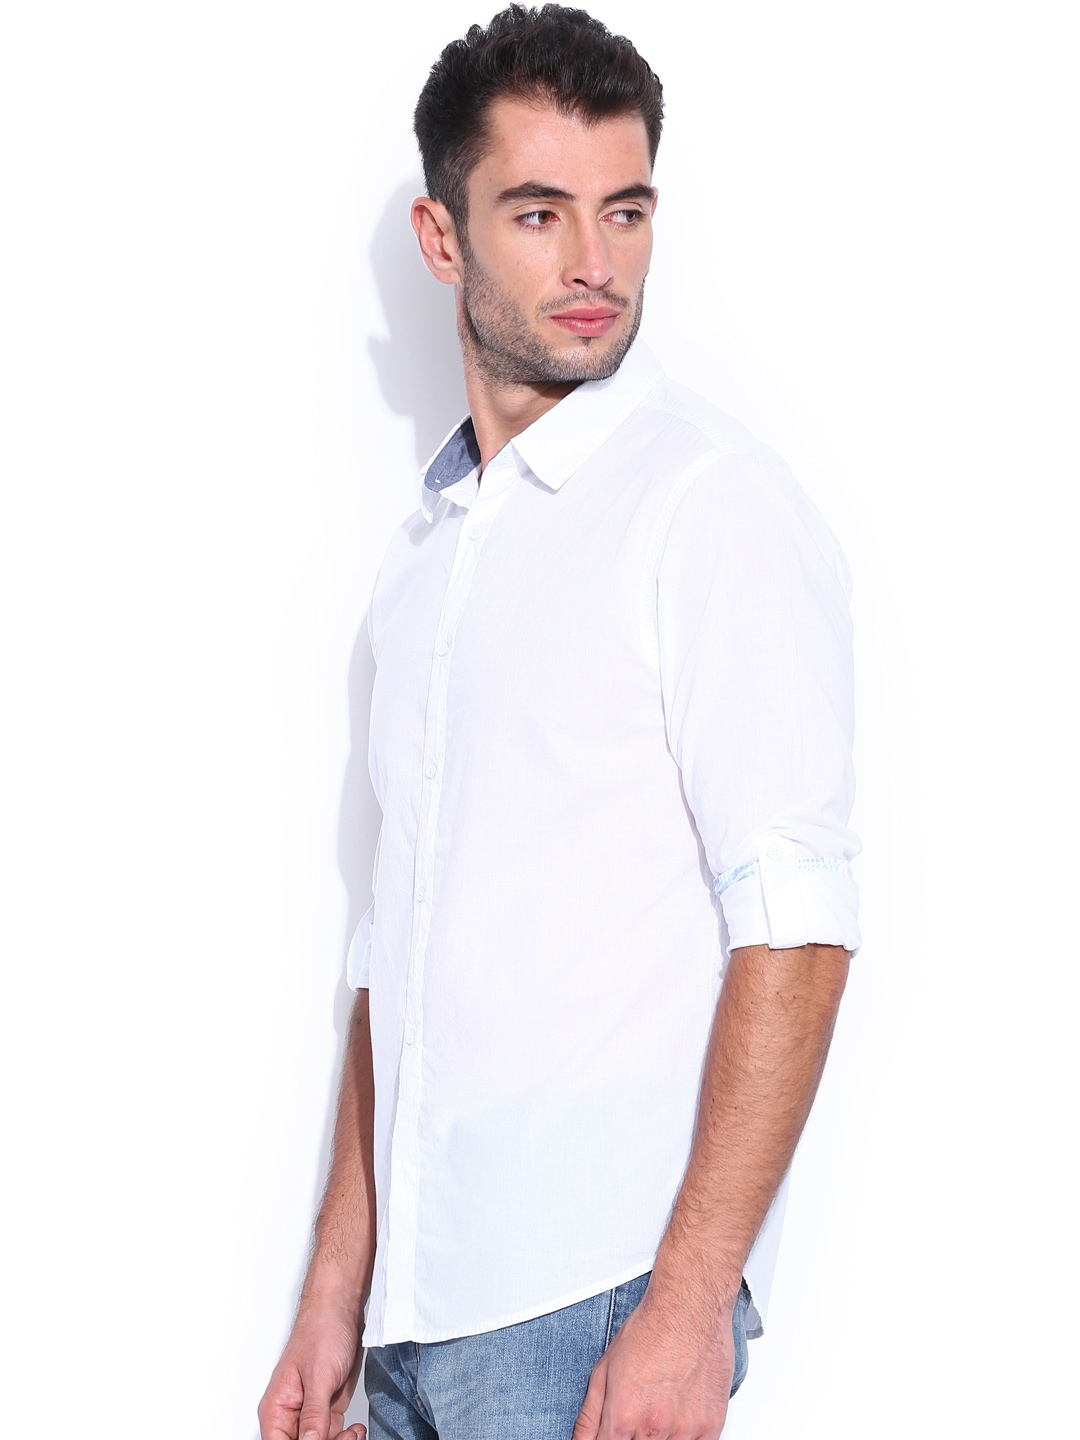 Myntra Guess White Slim Fit Casual Shirt 783443 Buy